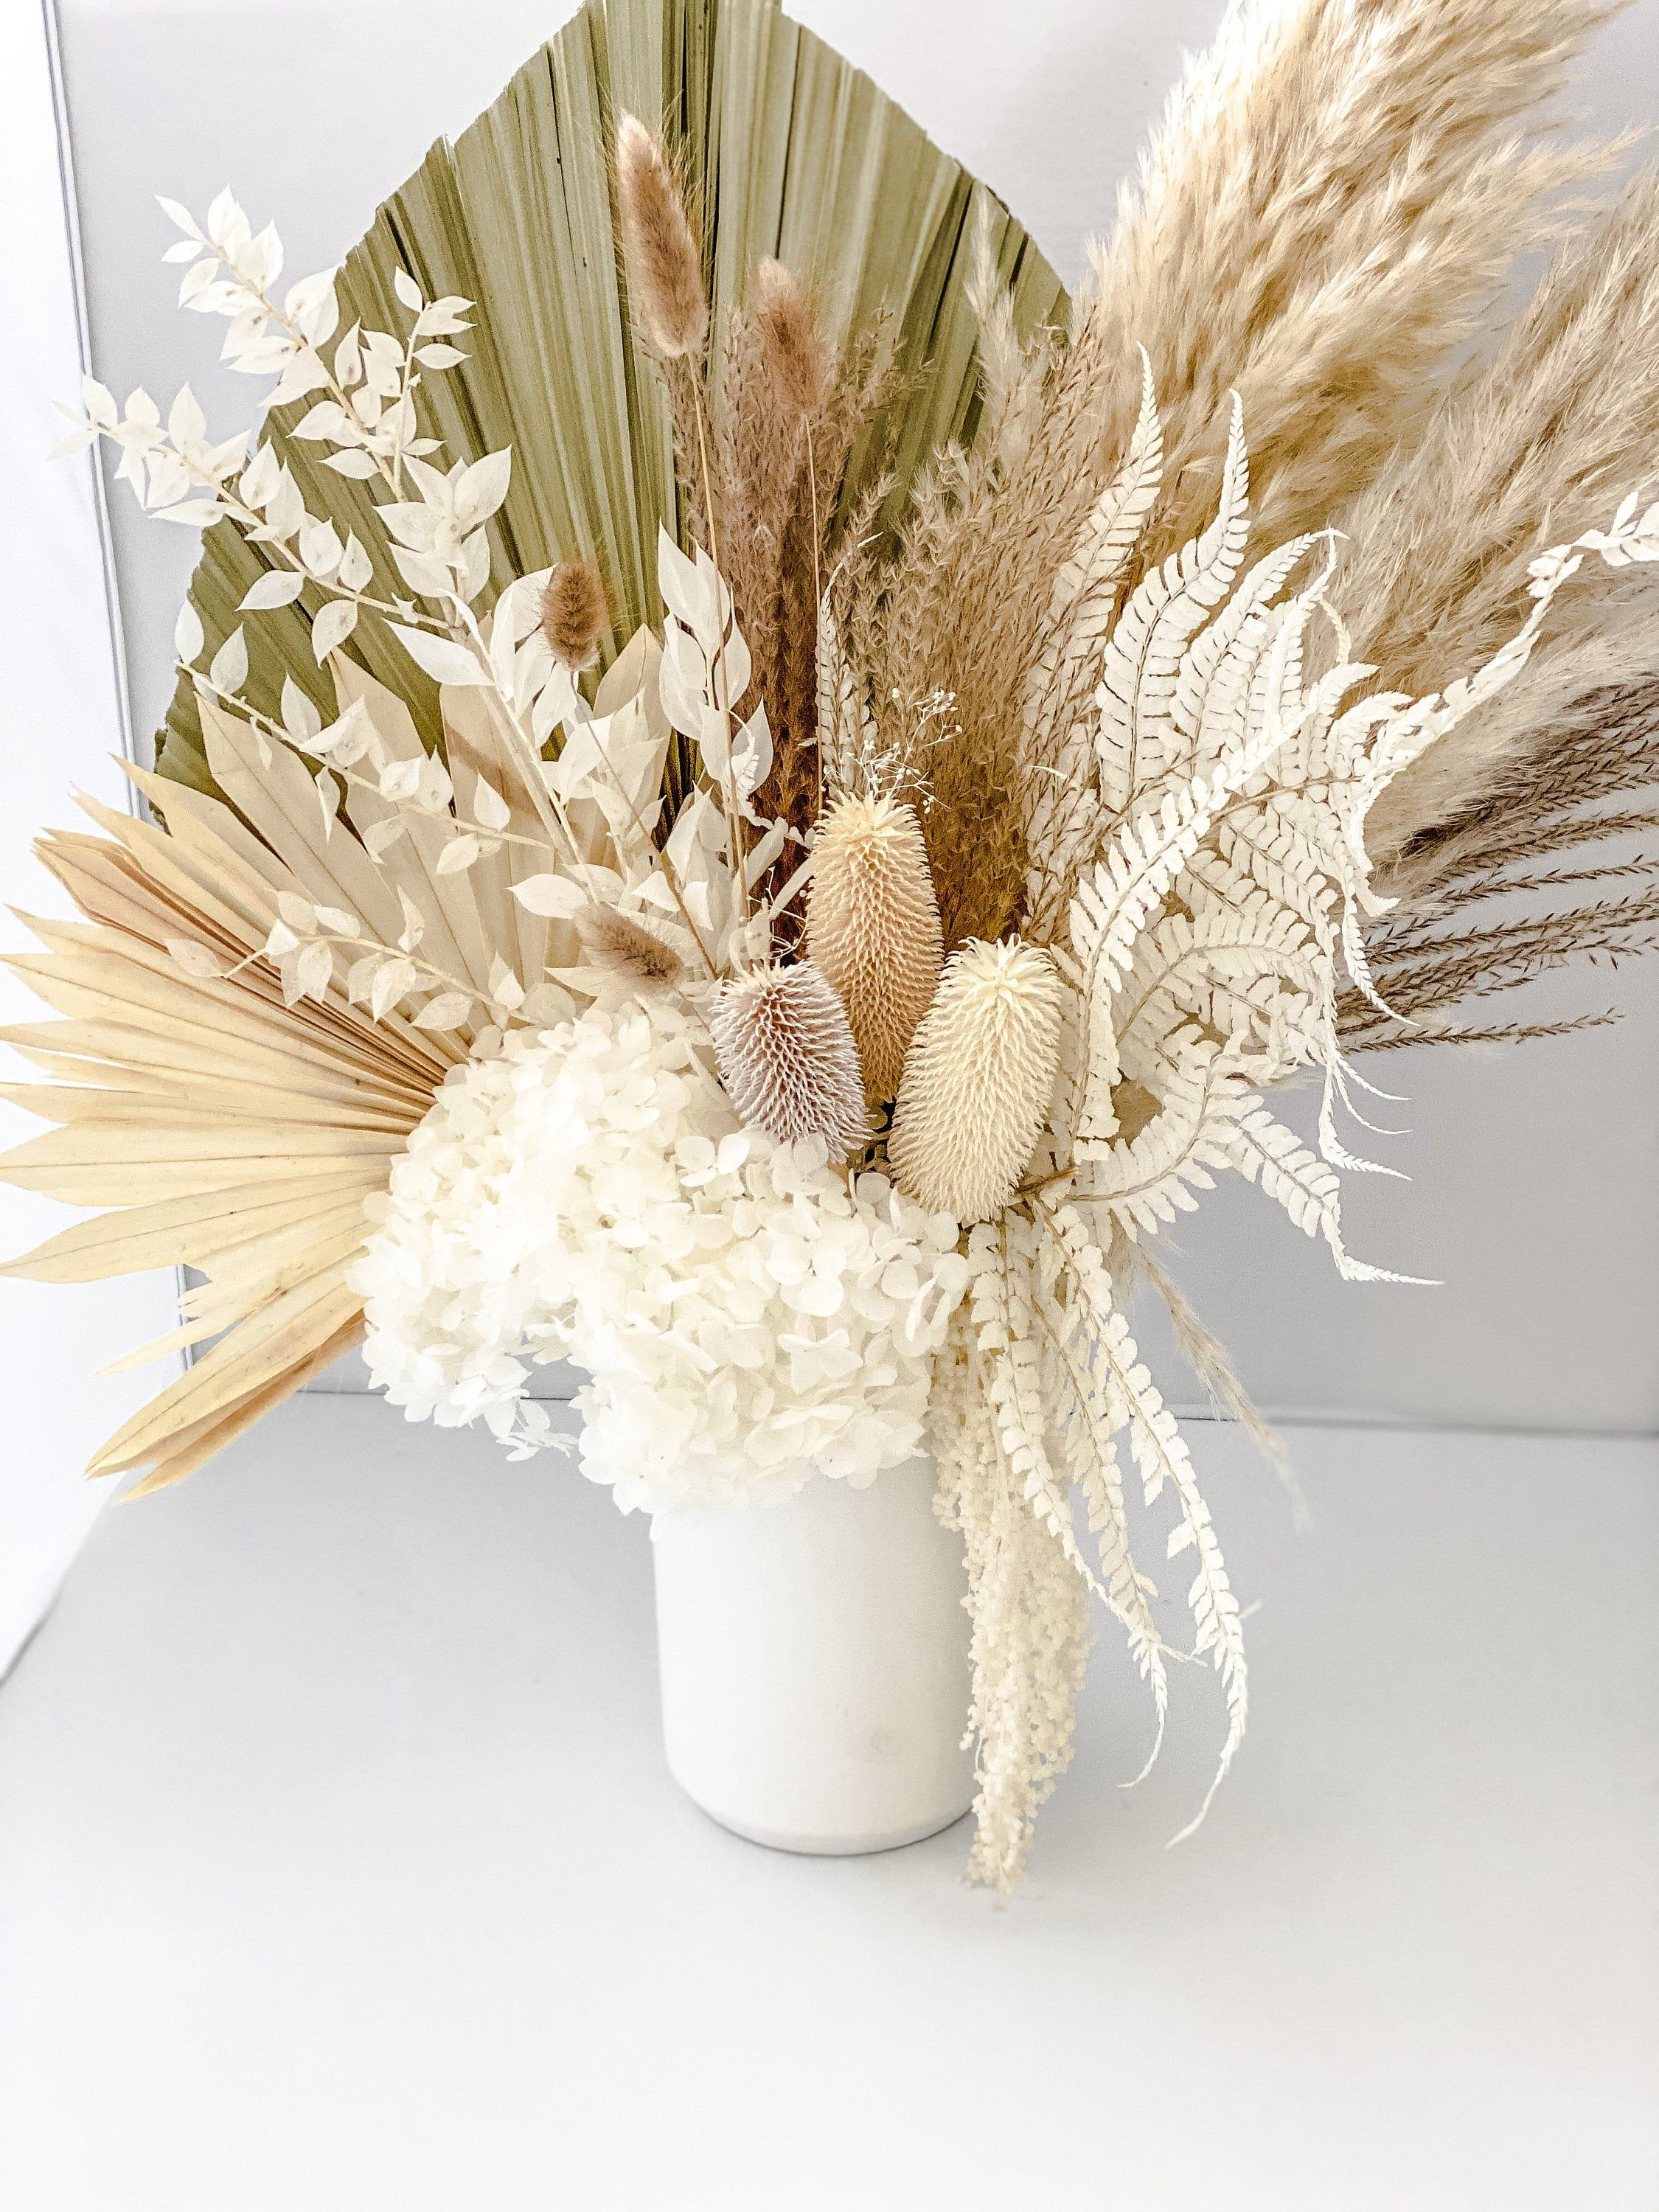 Large pampas grass and hydrangea vase arrangement   Hydrangea vase, Vase  arrangements, Dried floral